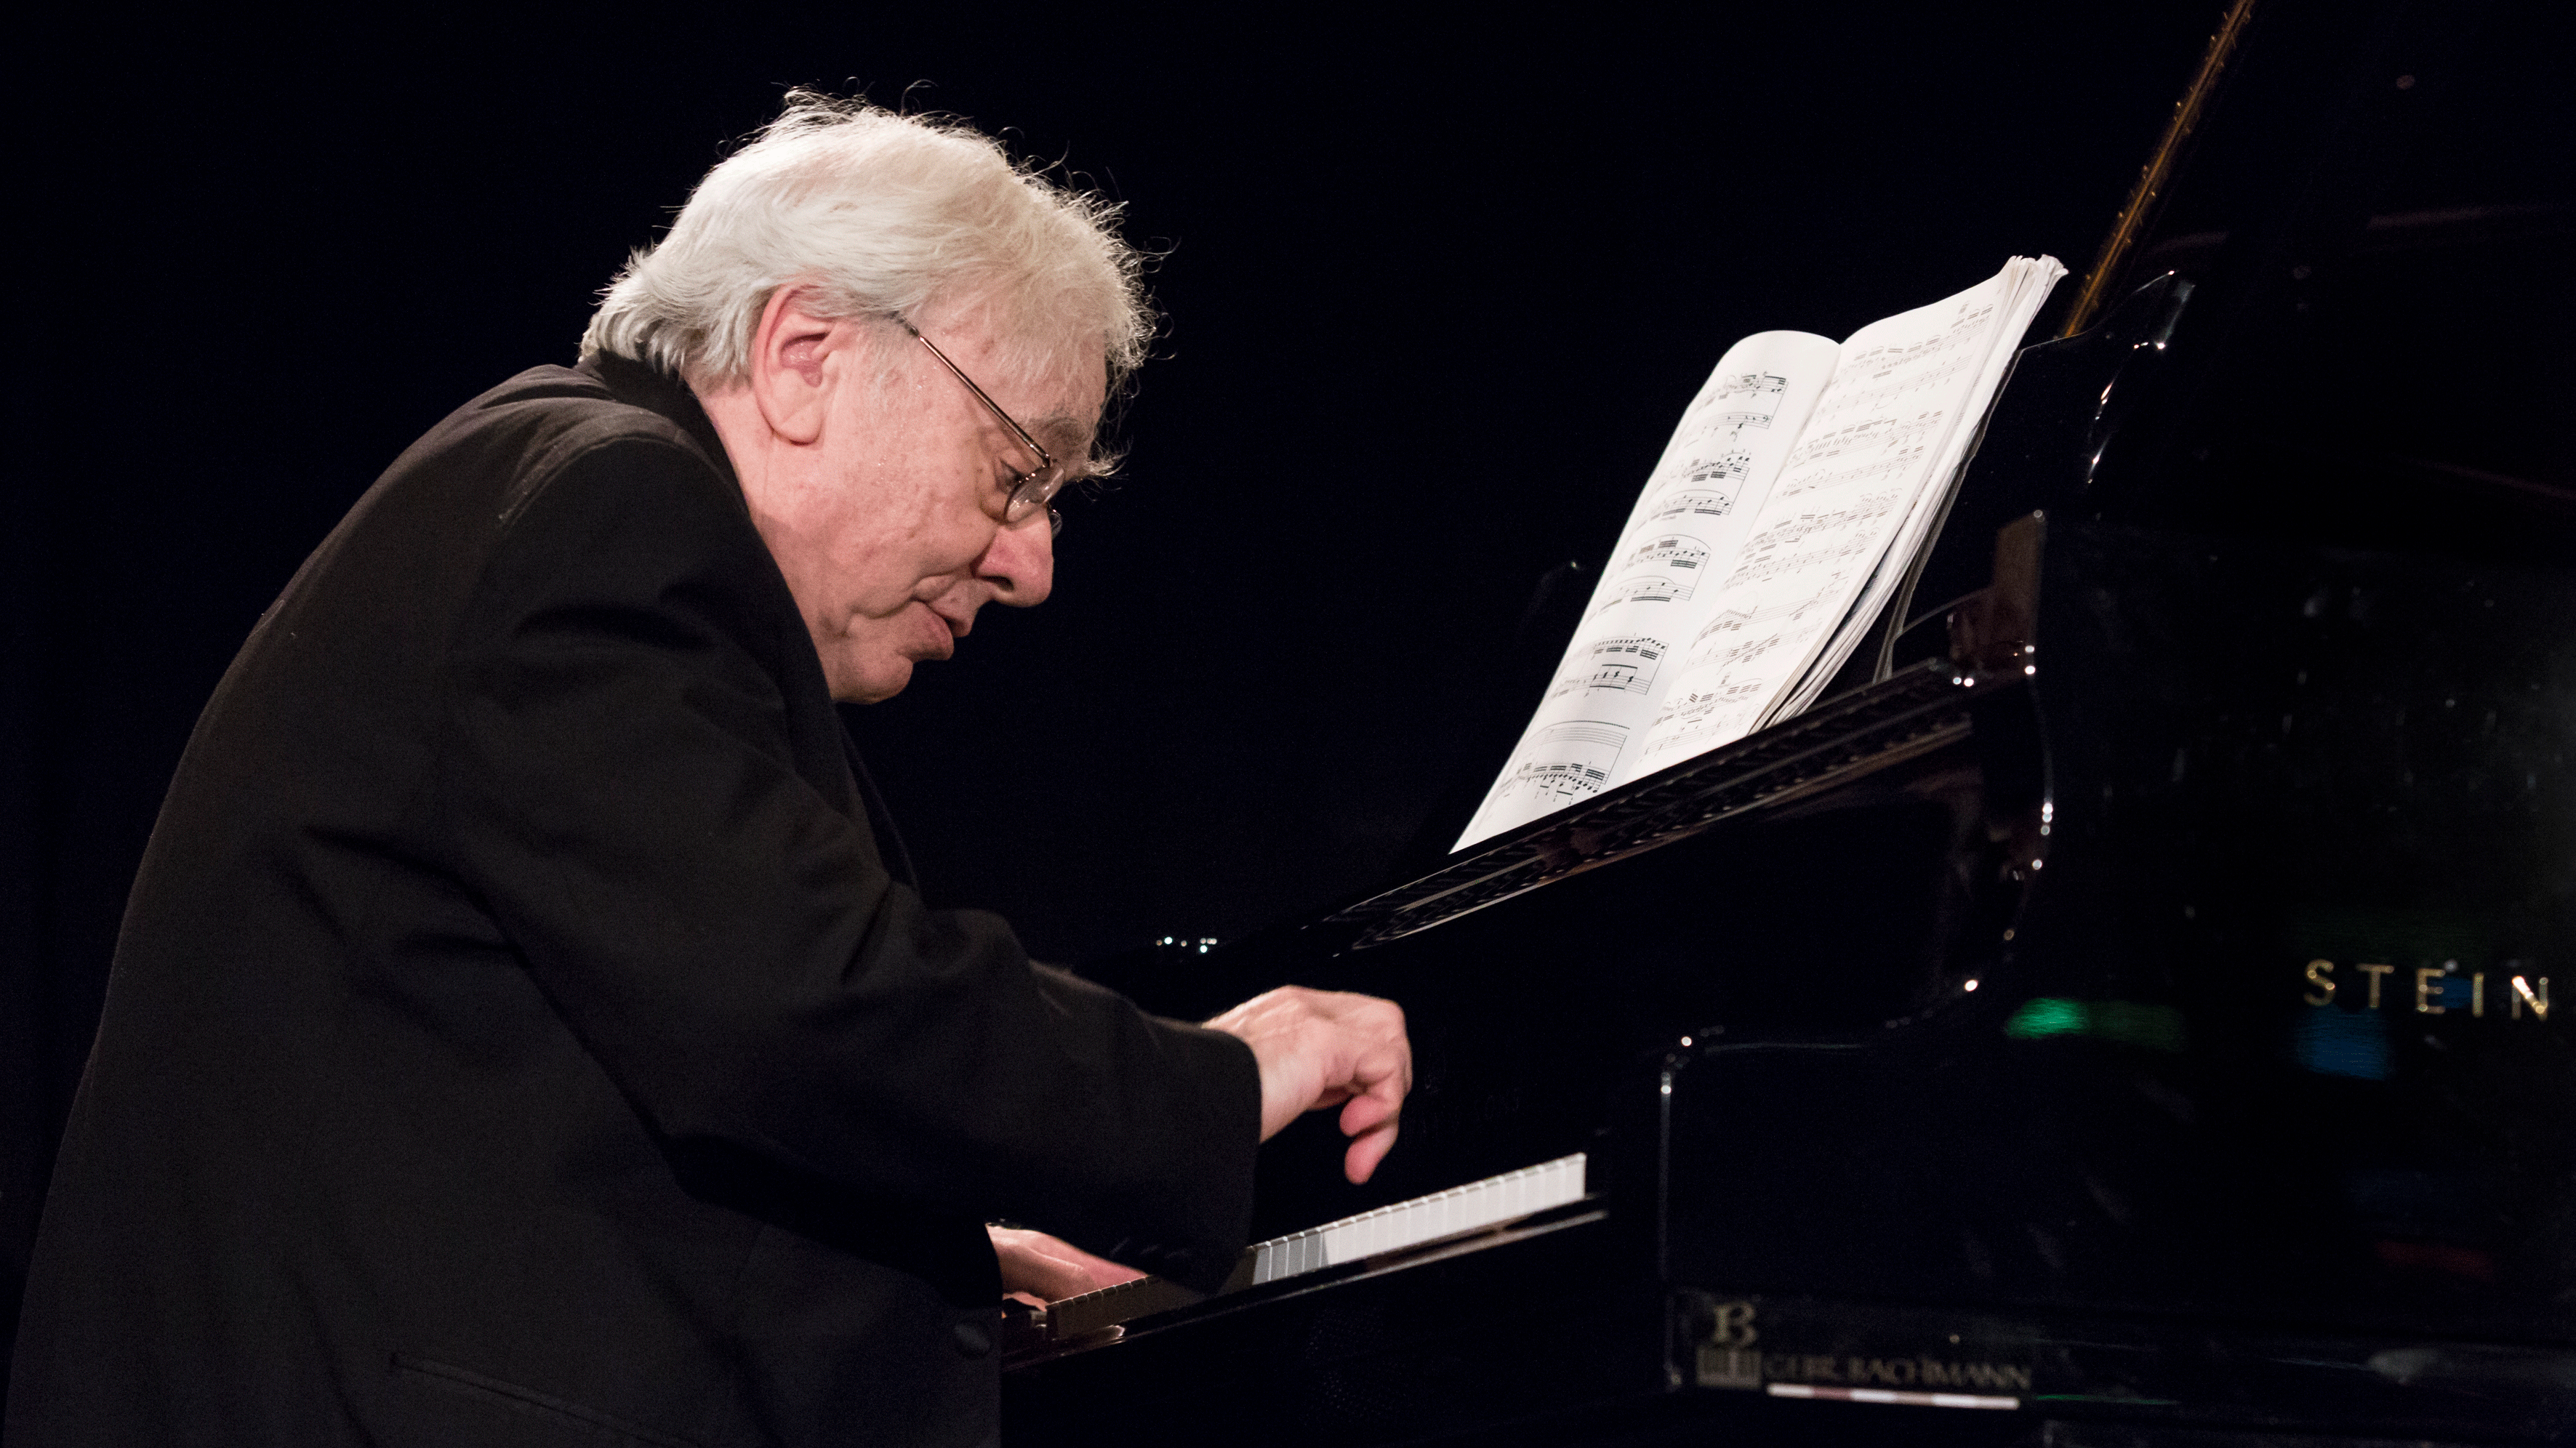 Richard Goode plays Mozart, Janáček, Beethoven, and Debussy